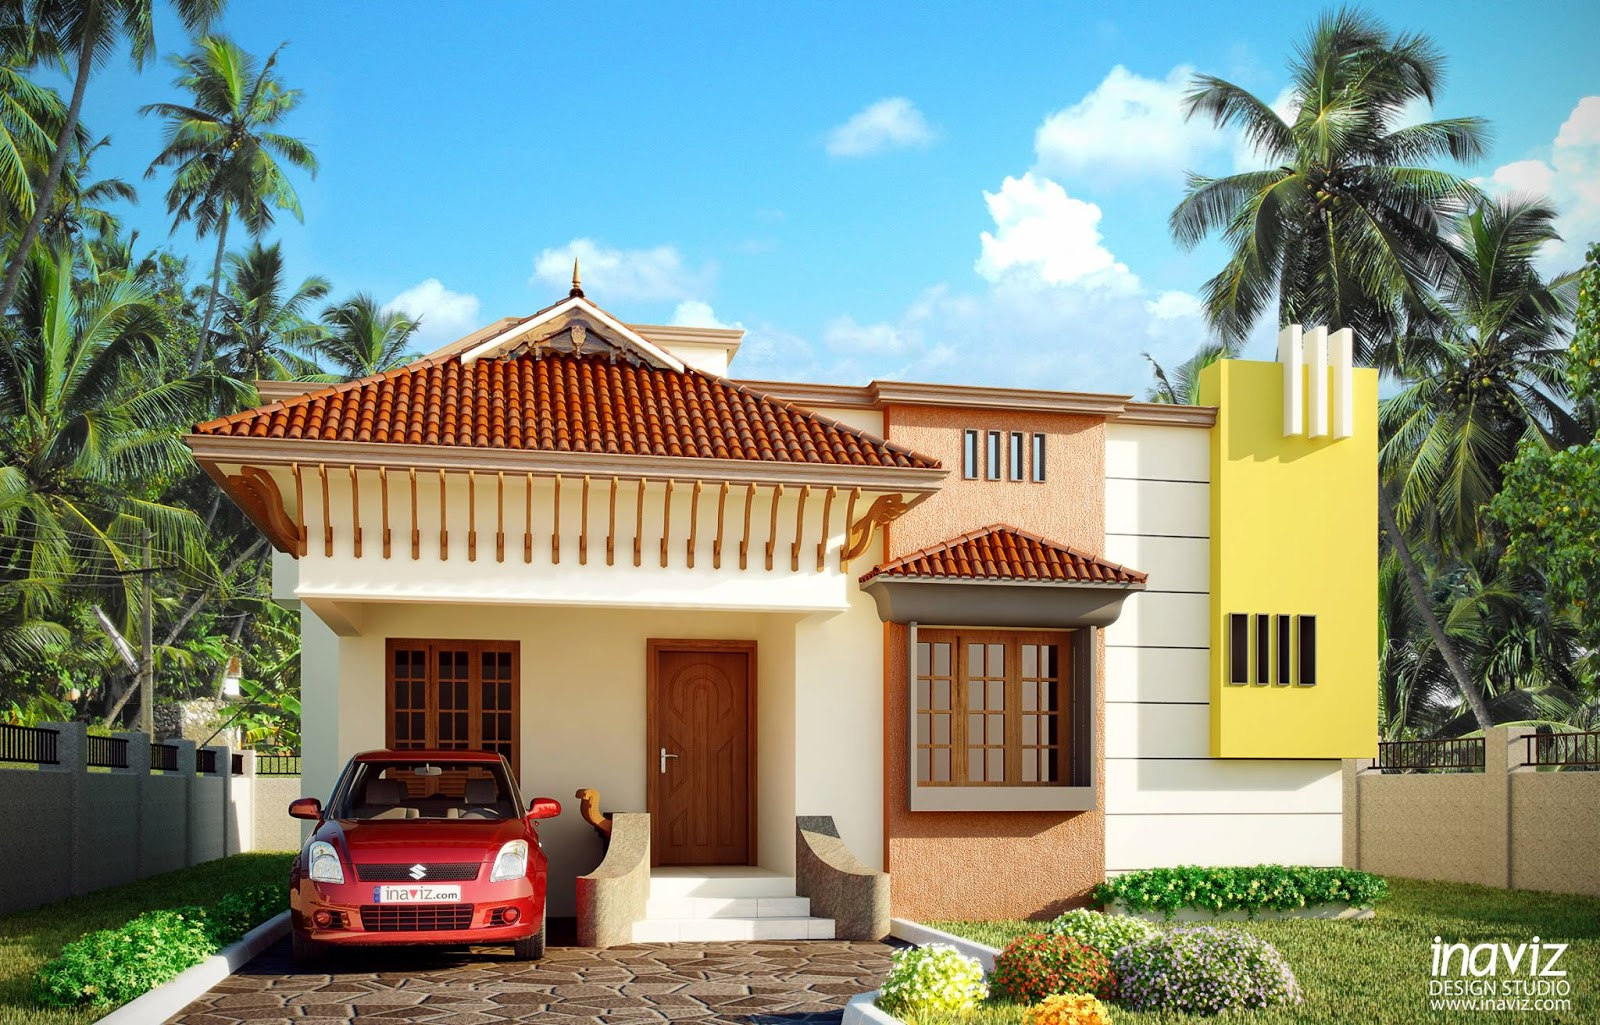 Inaviz design studio small villa at kothamangalam for Small villa plan